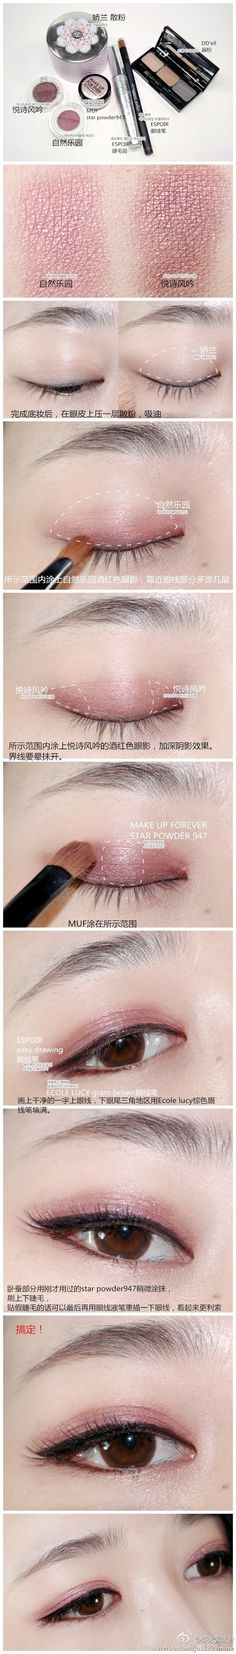 asian make up ⭐️⭐️ www.AsianSkincare.Rocks